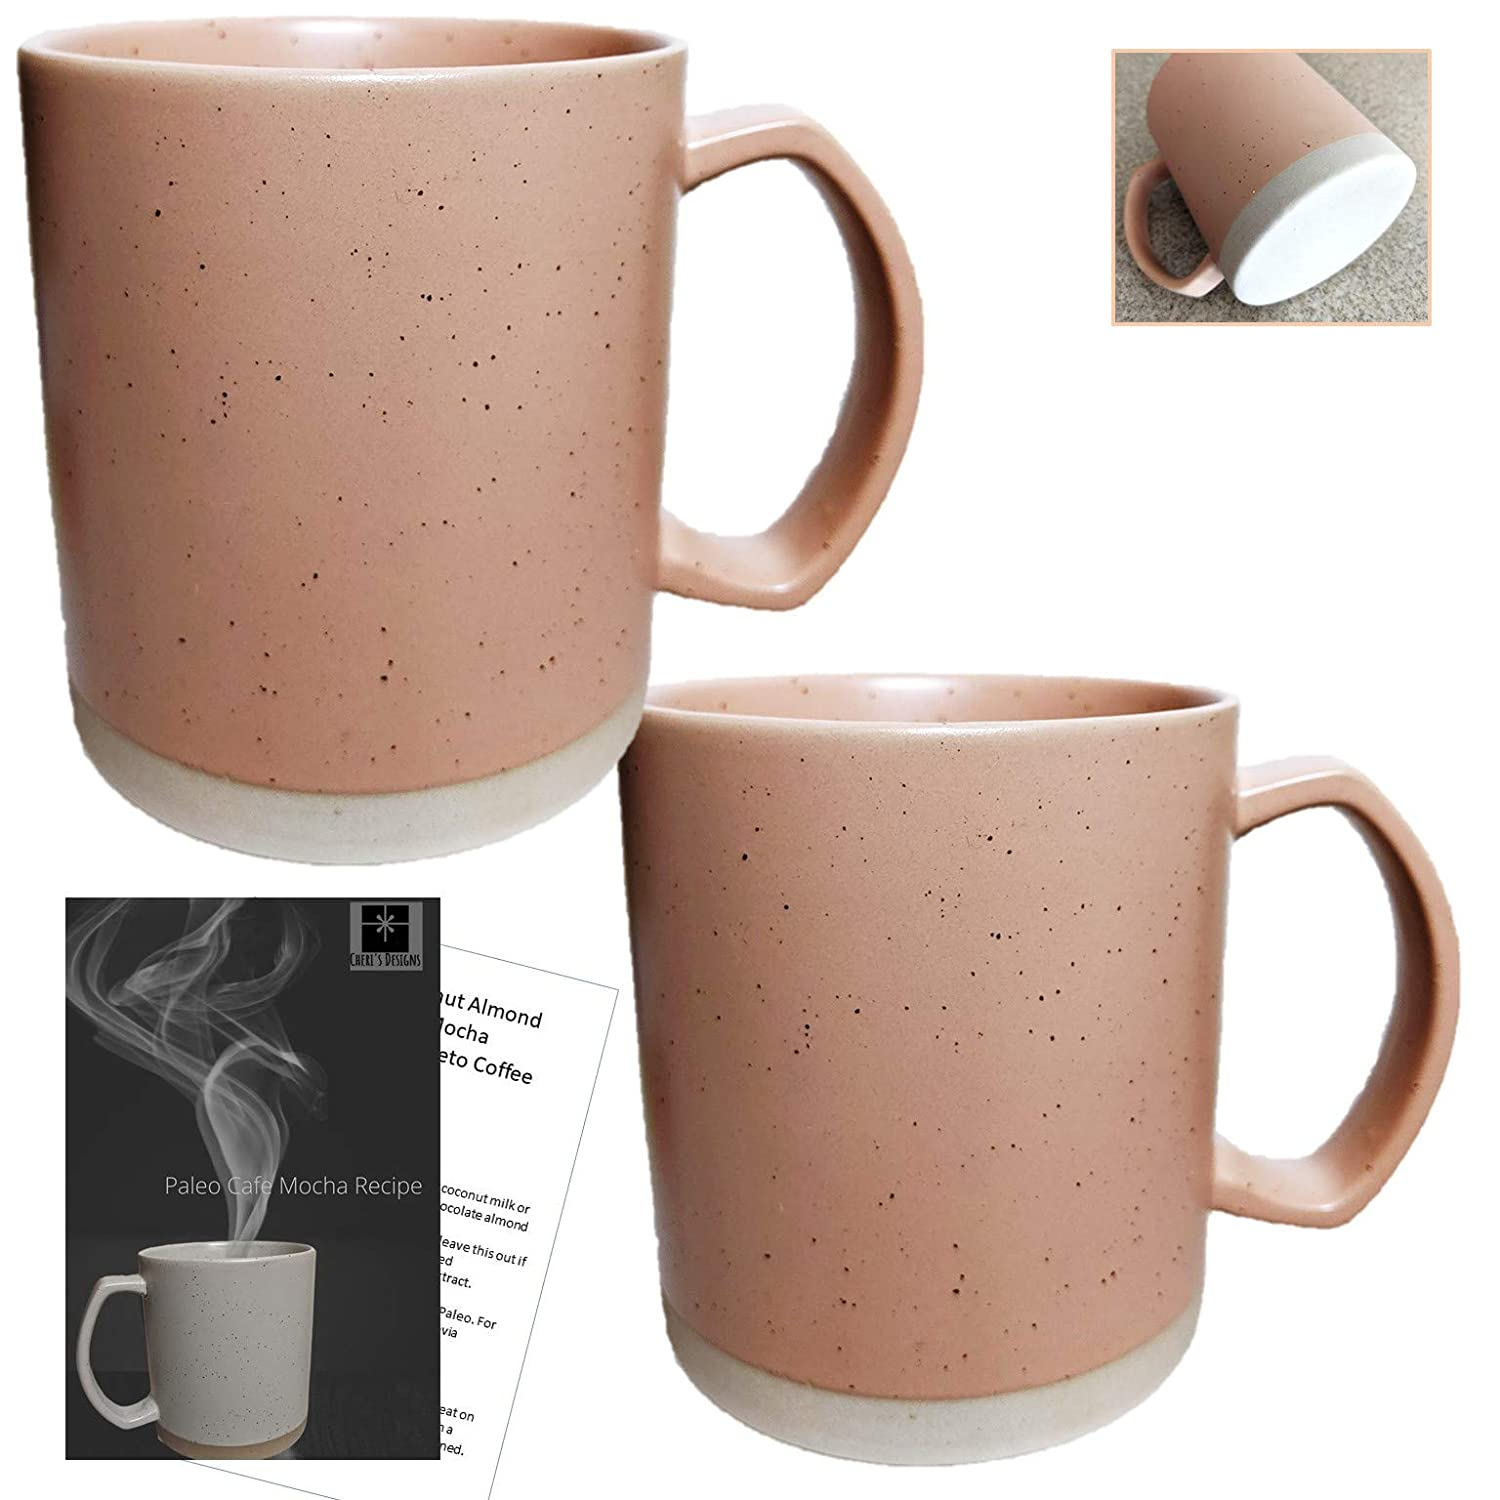 Buy Flat Bottom Coffee Mug For Warmer Set 2 Large Stoneware Coffee Cups With Completely Flat Bottoms Big Coffee Mugs Can Hold 16 Ounces Paleo Cafe Mocha Recipe Online